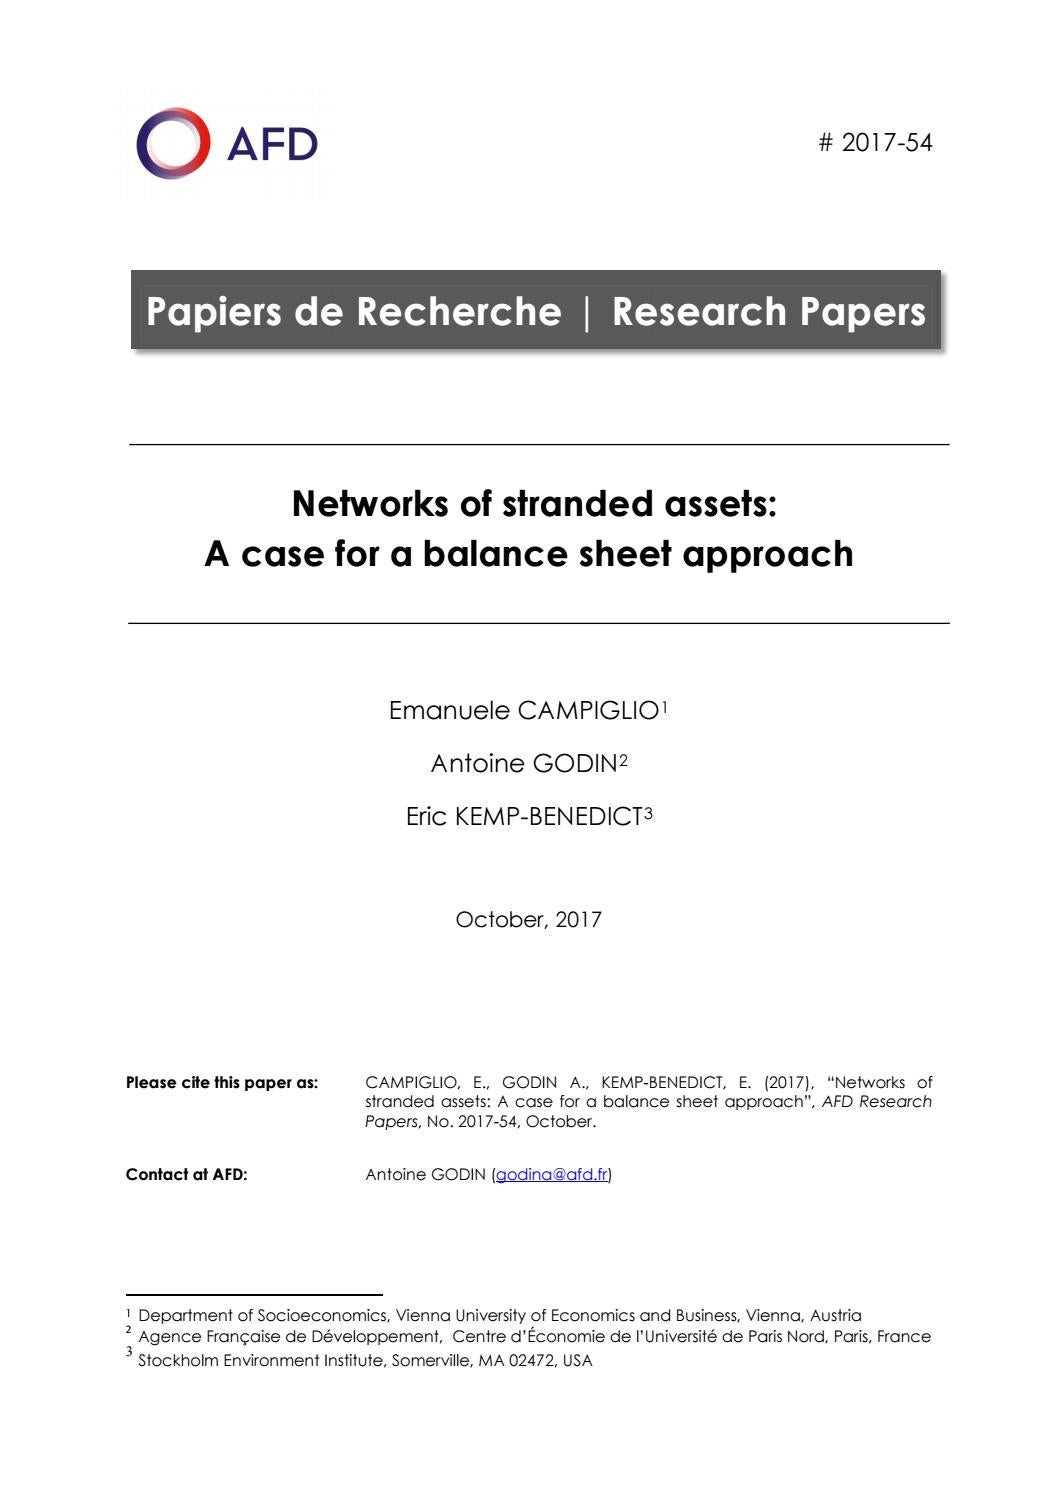 Networks of stranded assets: A case for a balance sheet approach by